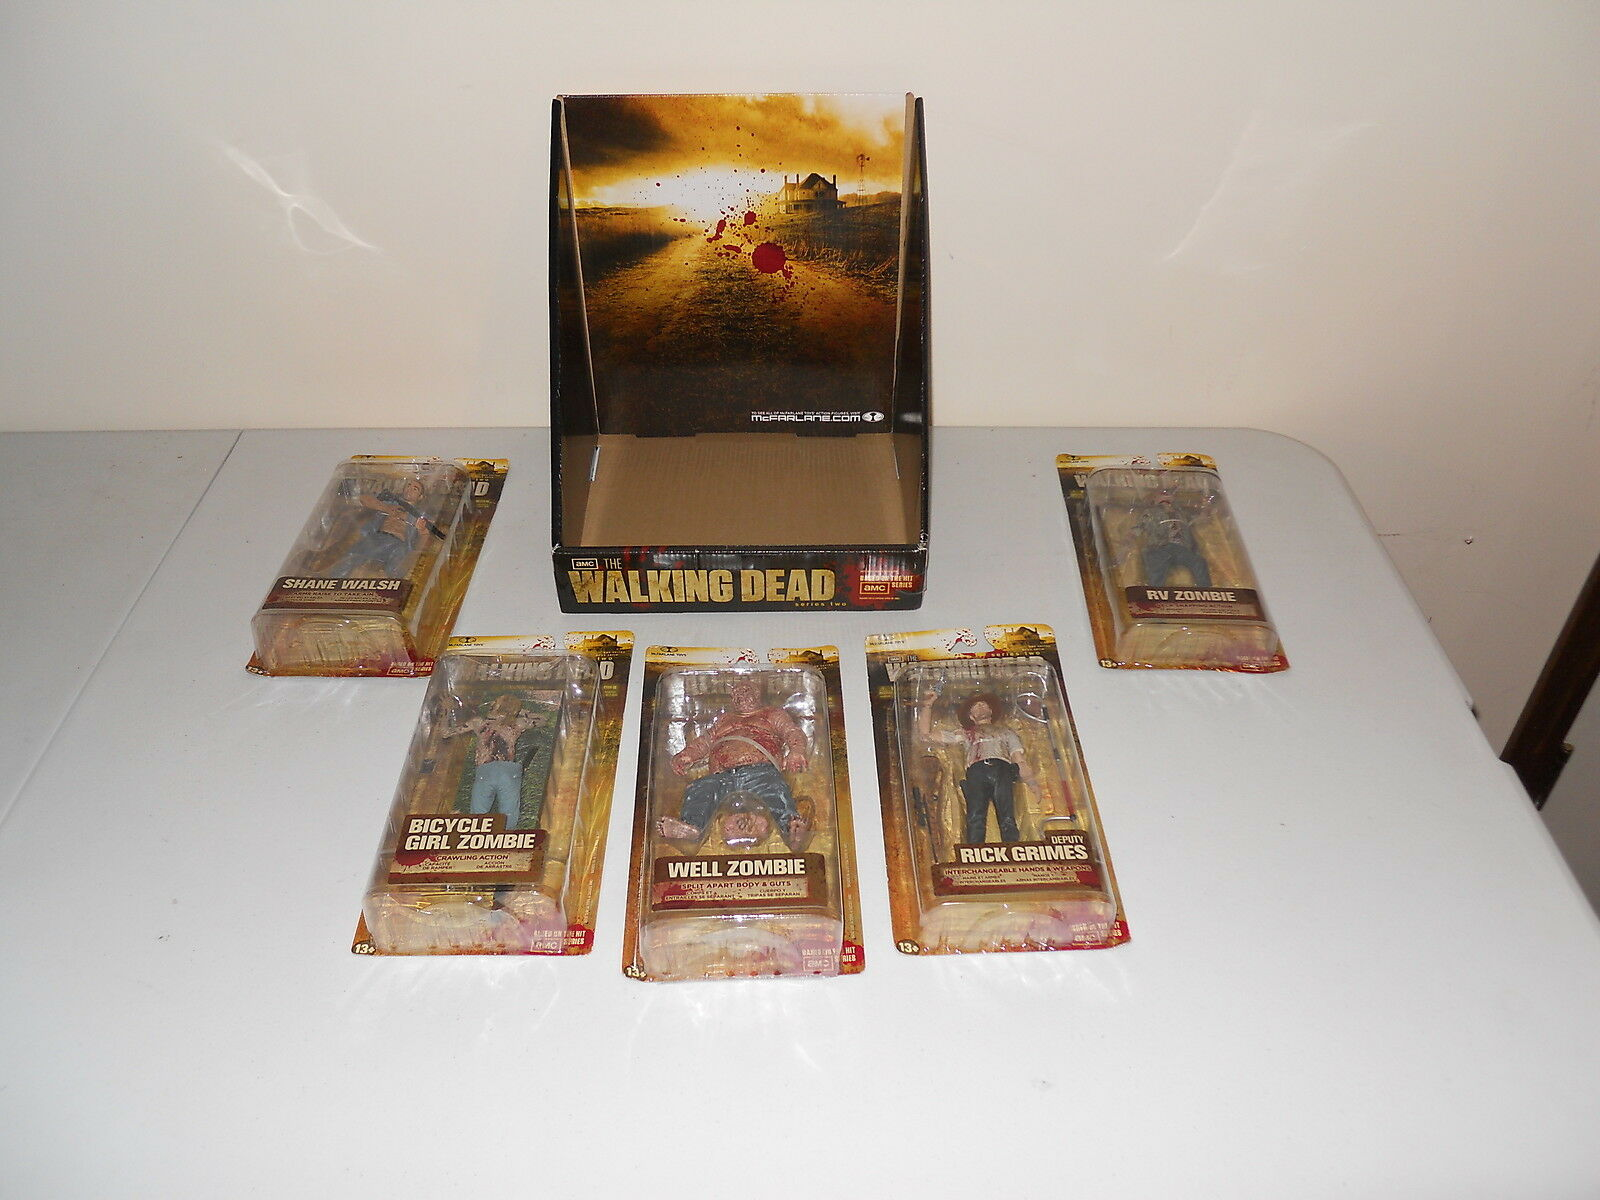 THE WALKING DEAD- SERIES 2 COMPLETE SET W  DISPLAY BOX- 2012